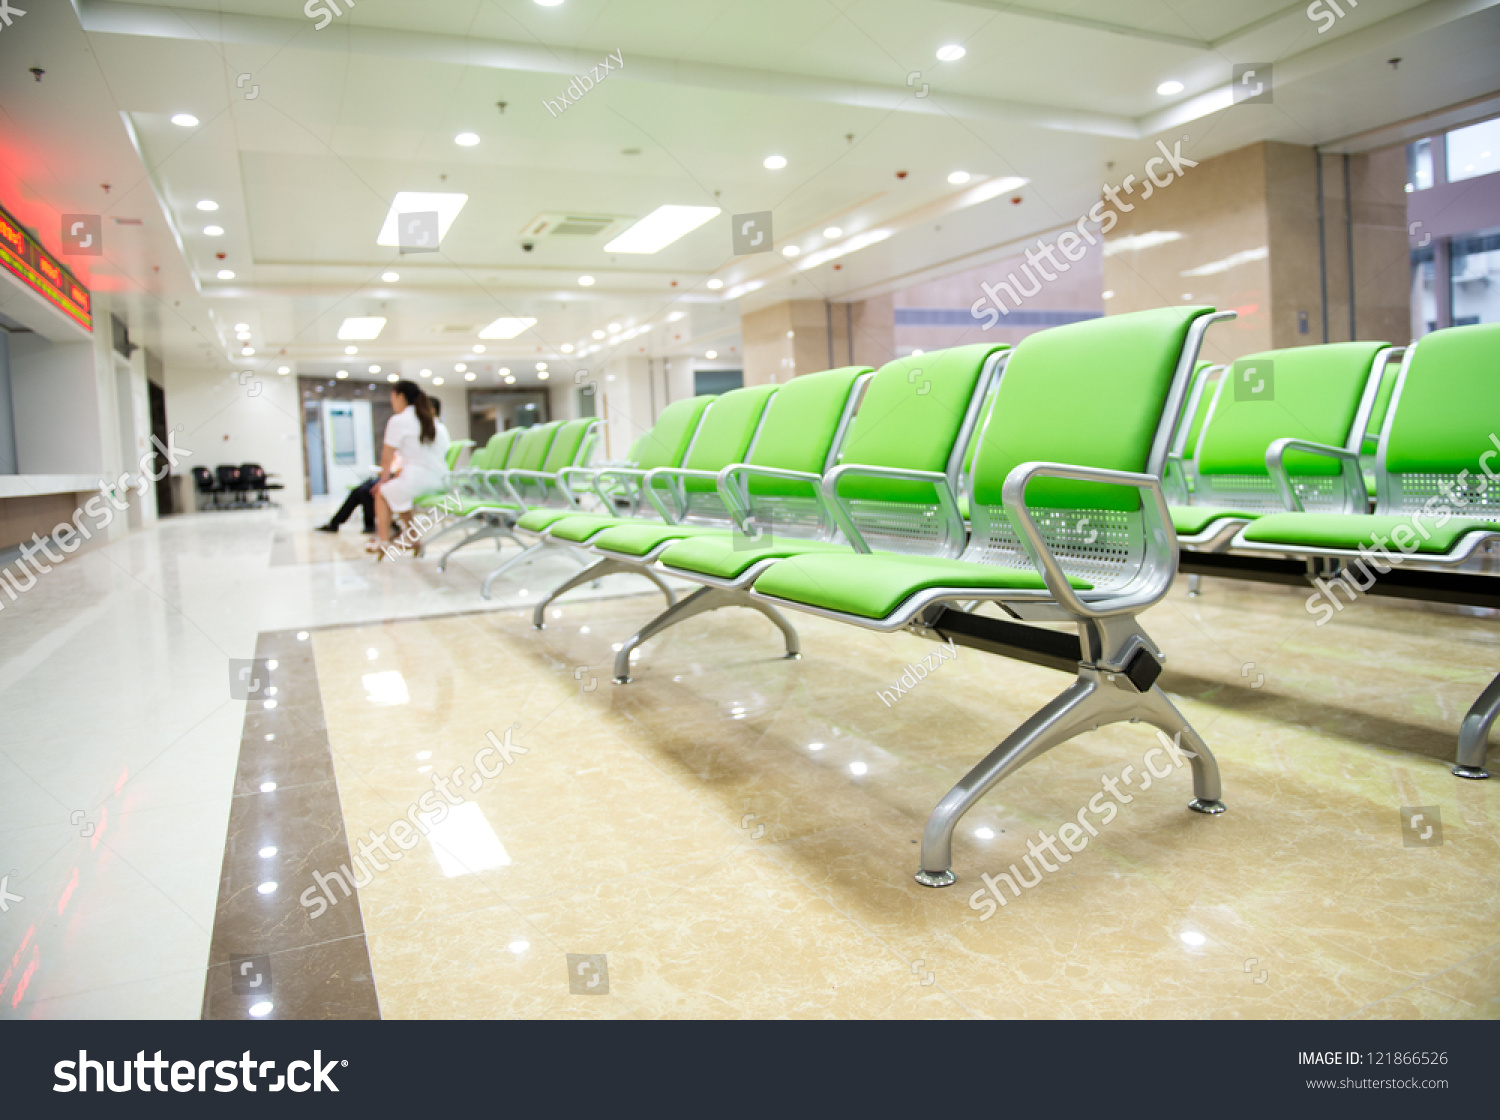 Empty chair in room - Hospital Waiting Room With Empty Chairs